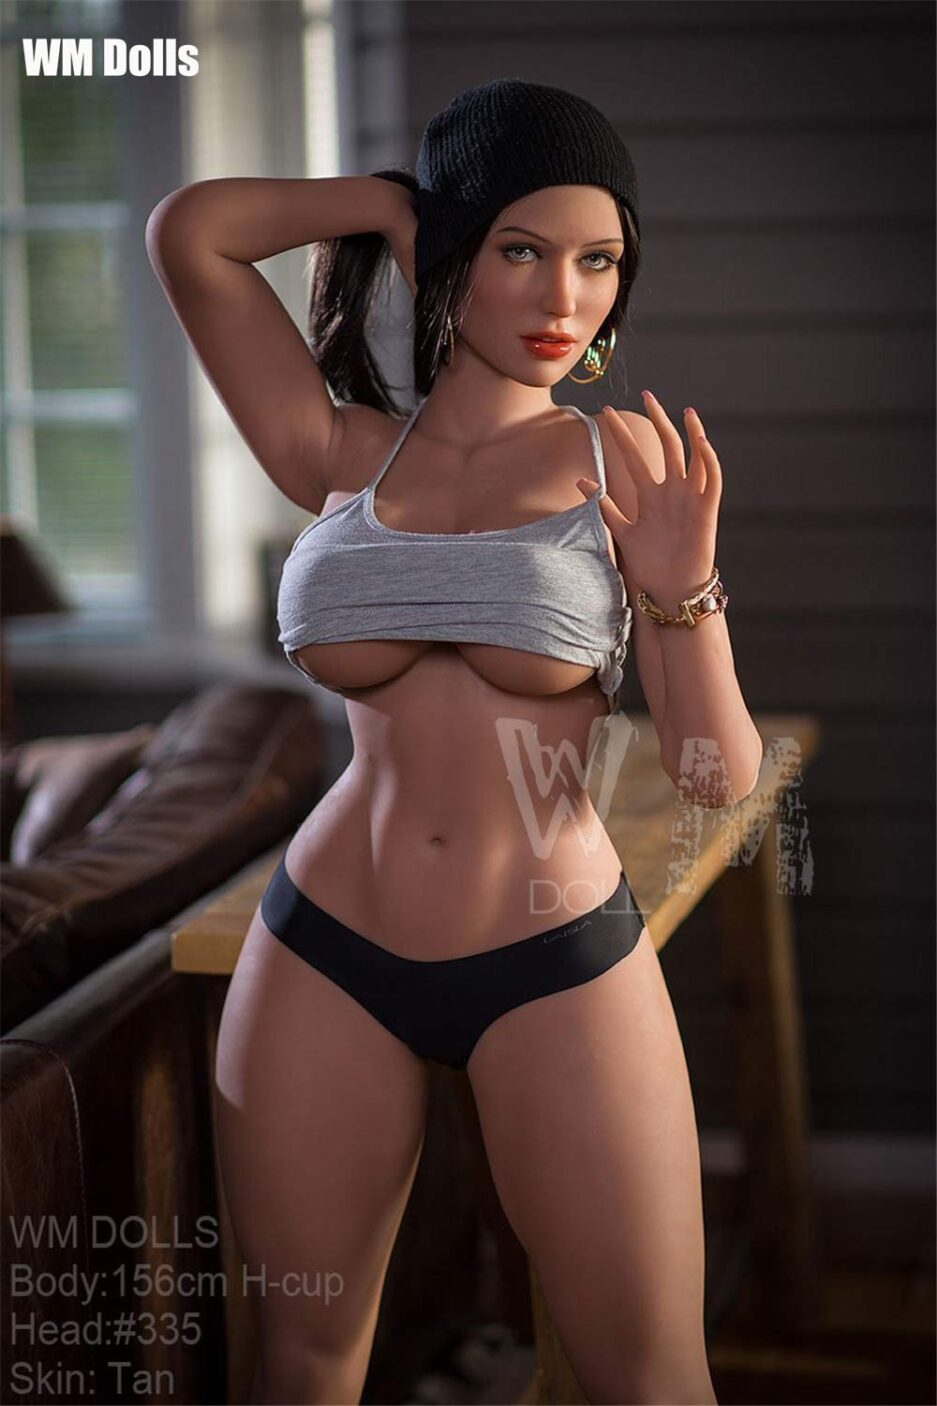 Big breasted sex doll with hair